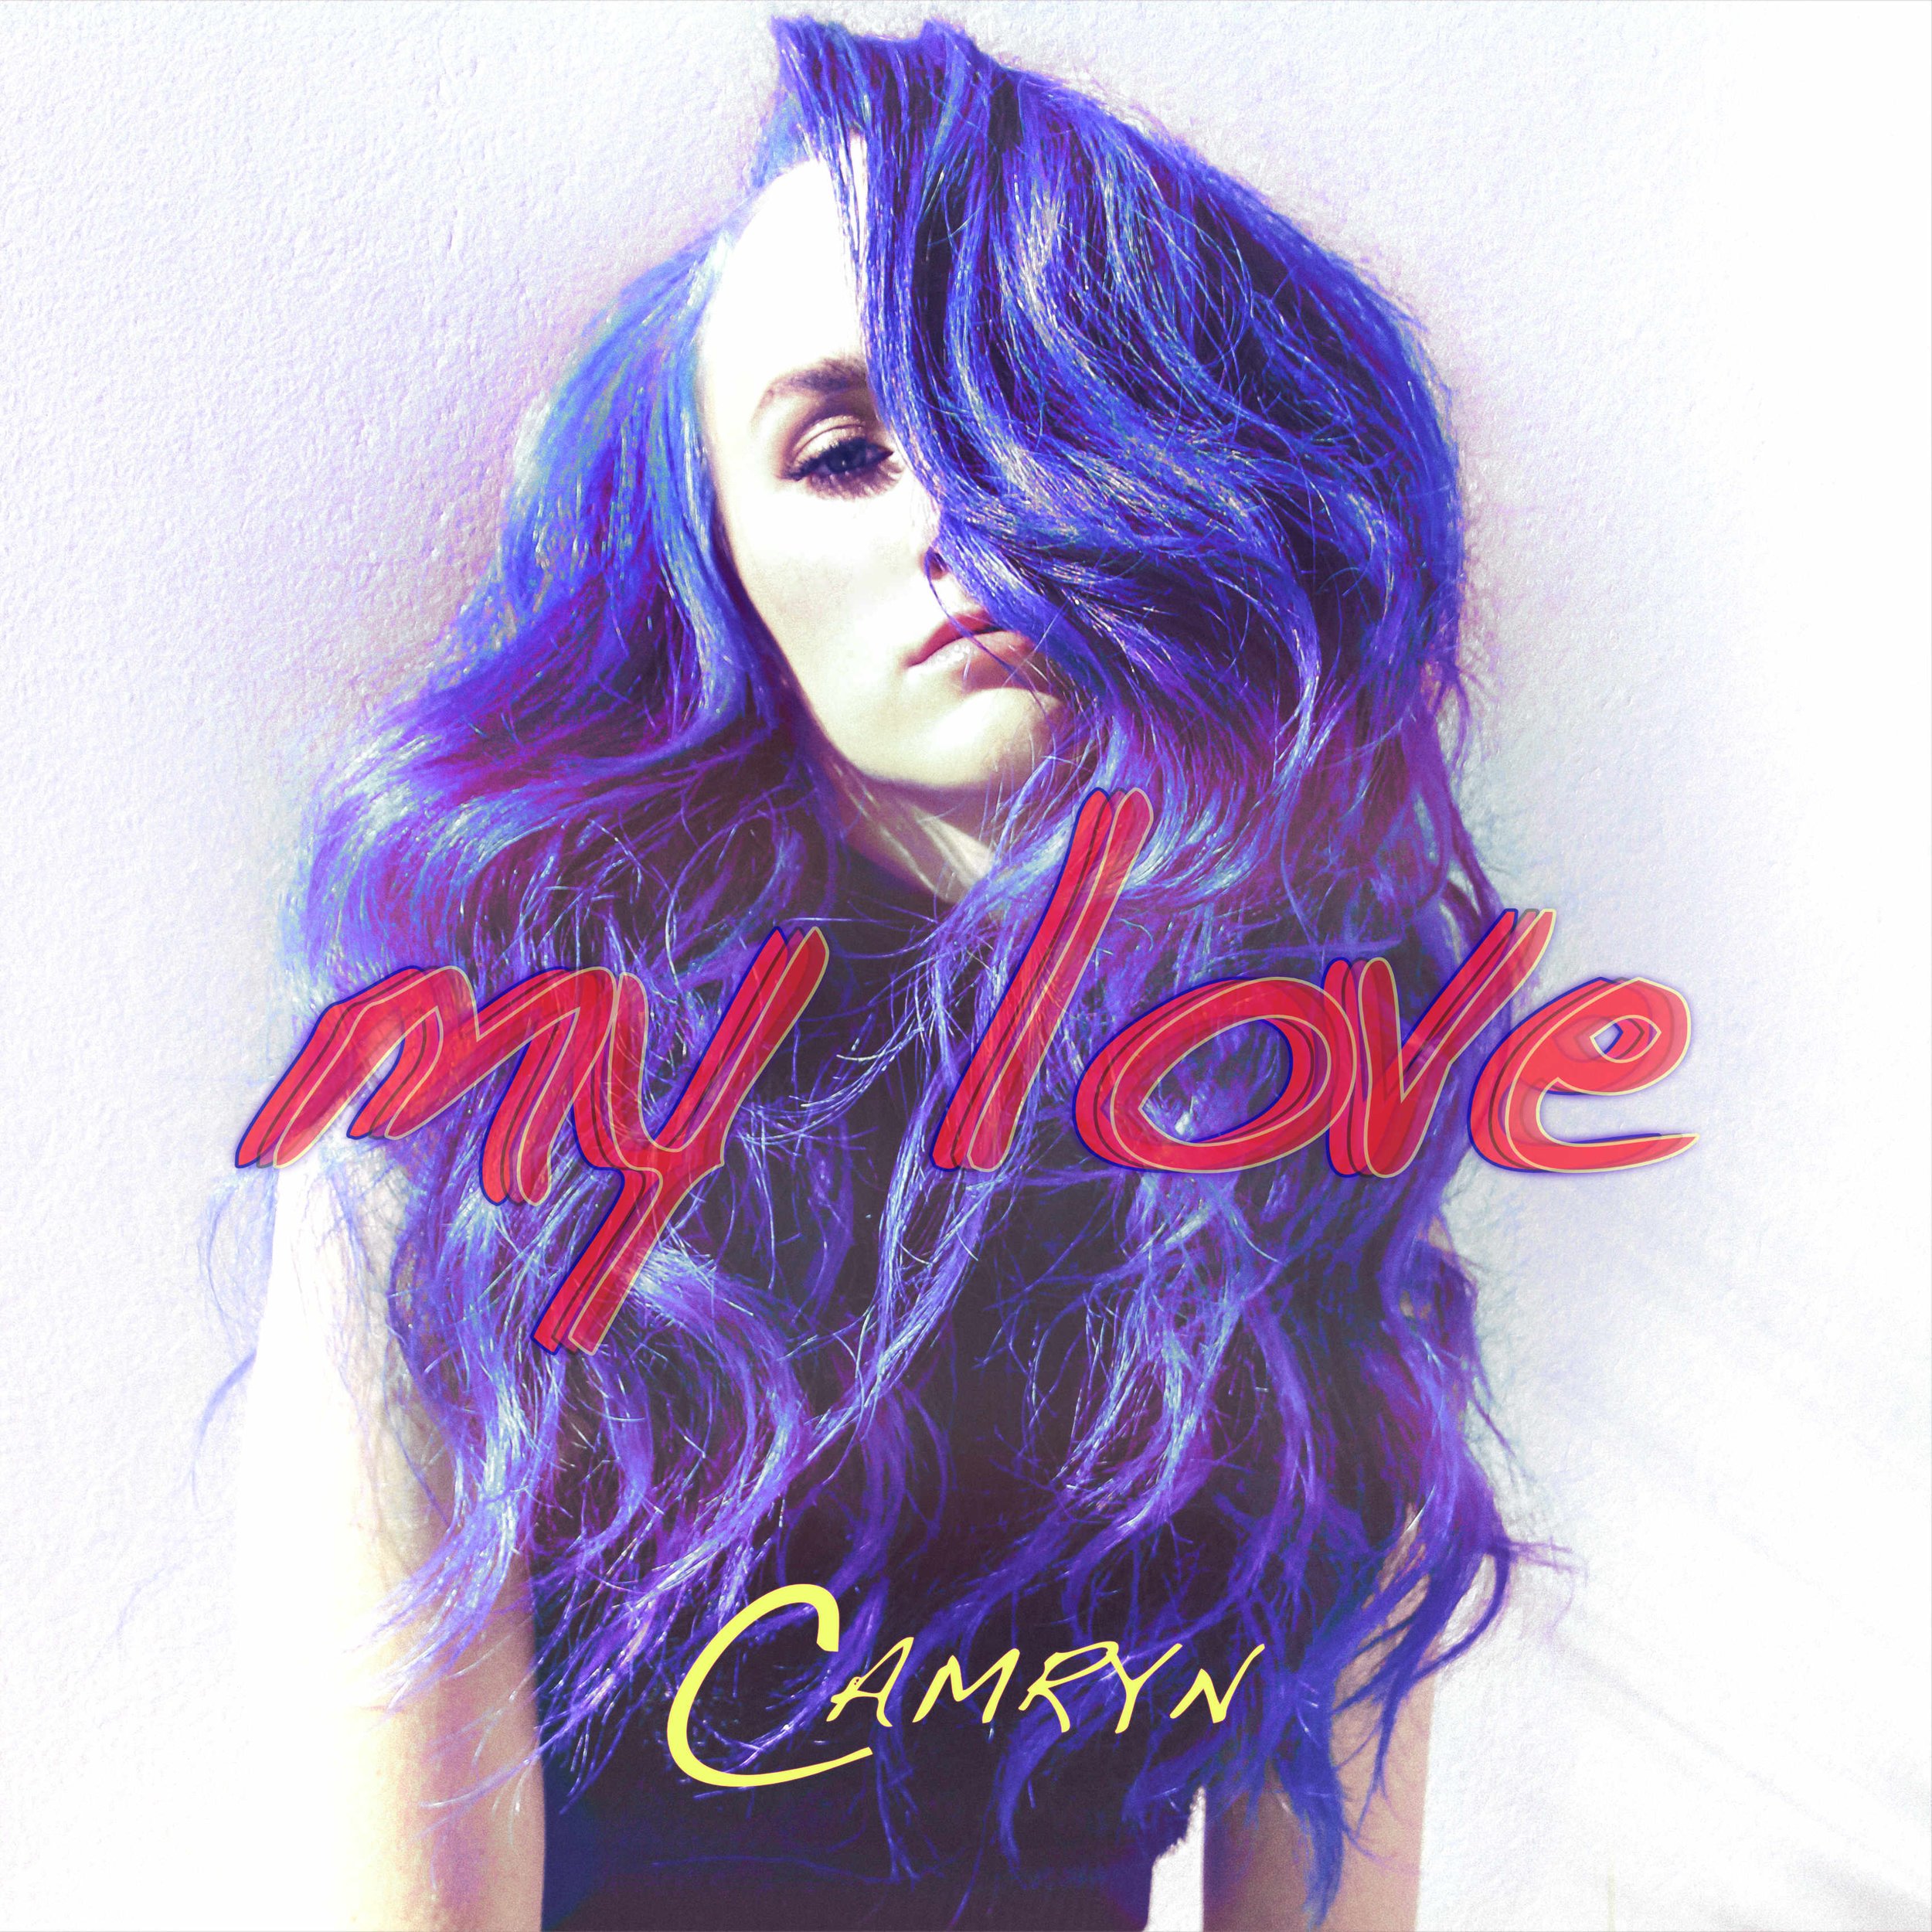 camryn my love cover